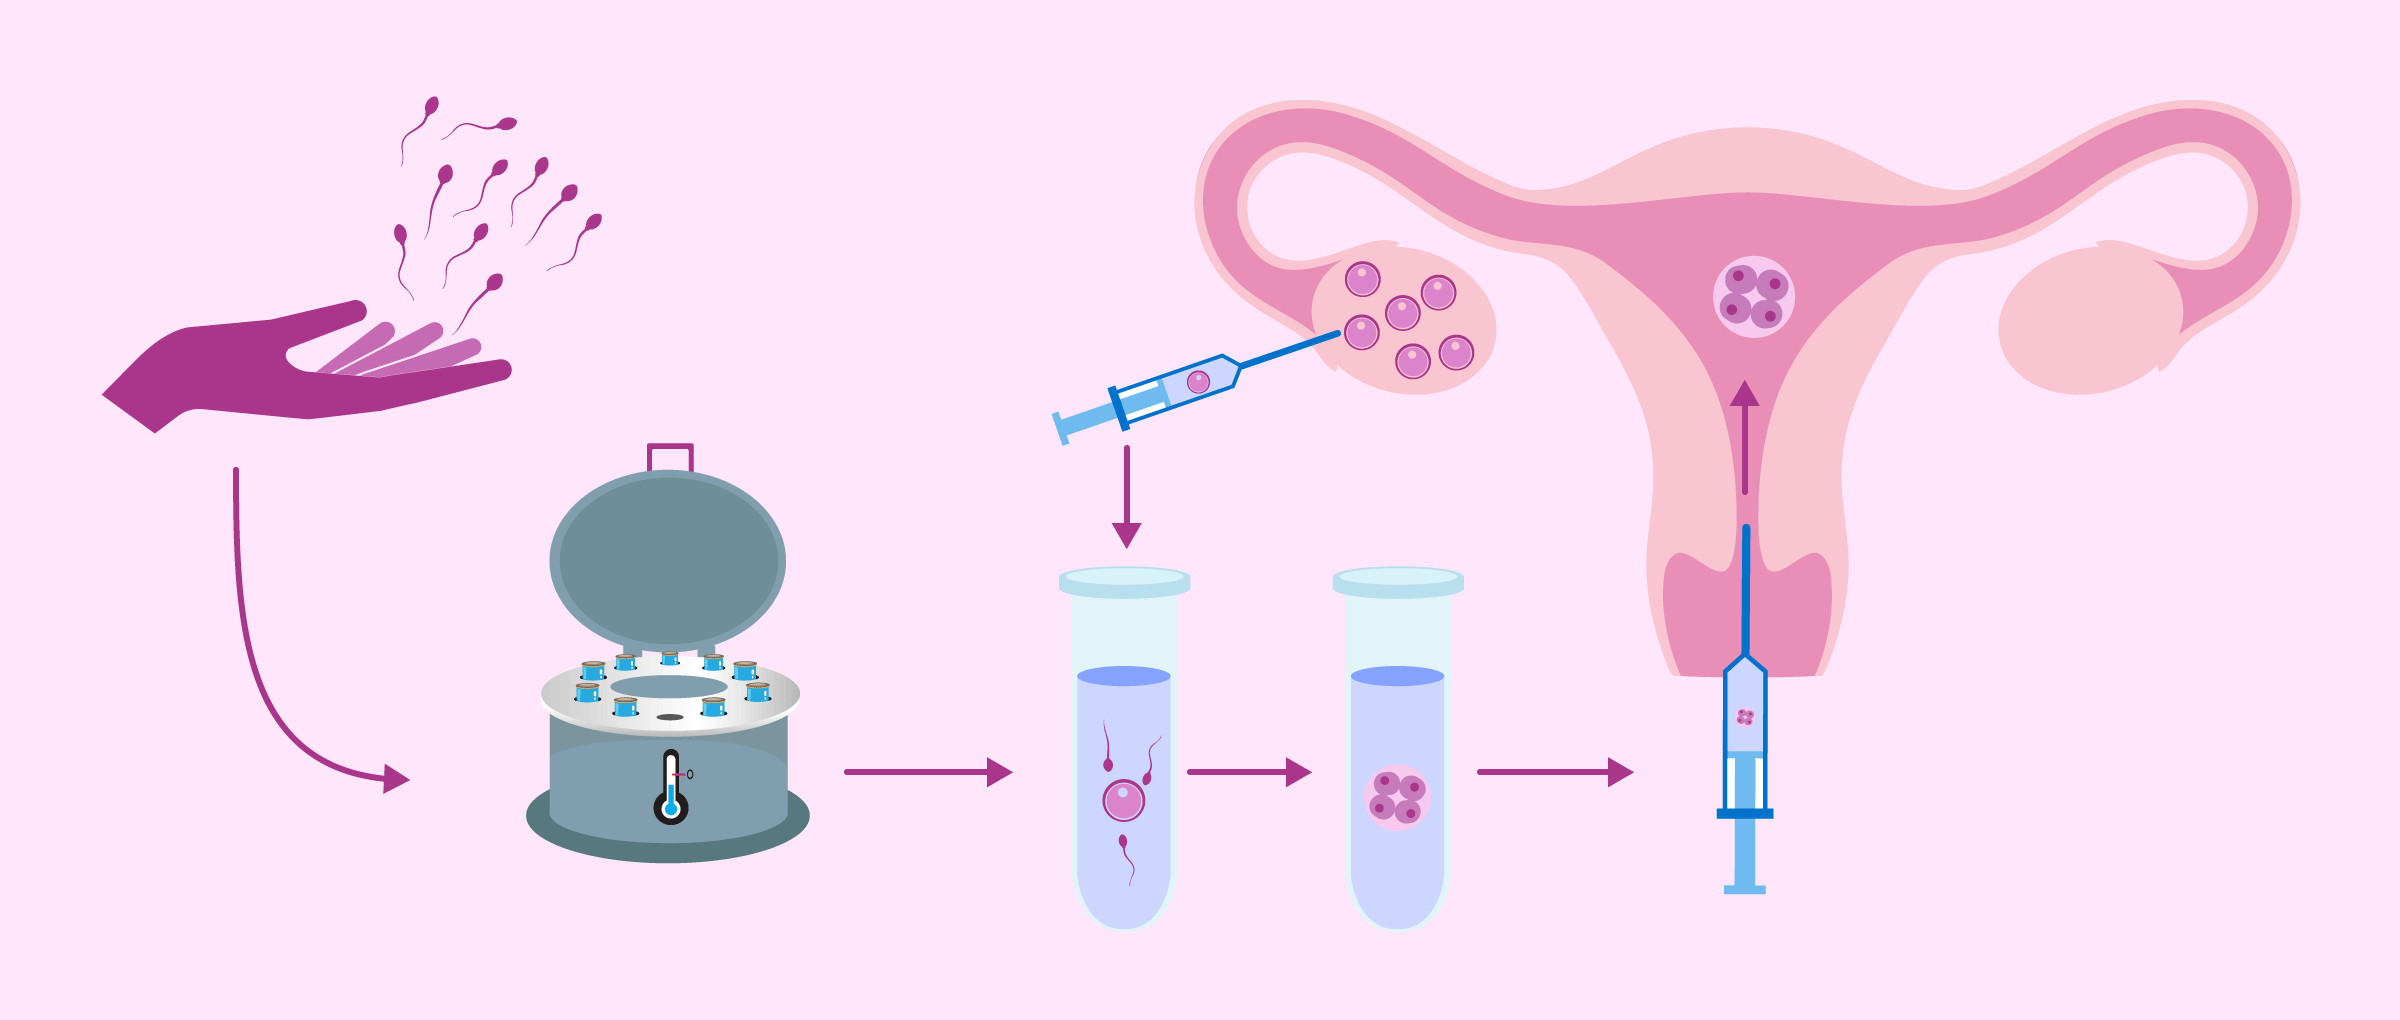 Process of IVF with donor sperm